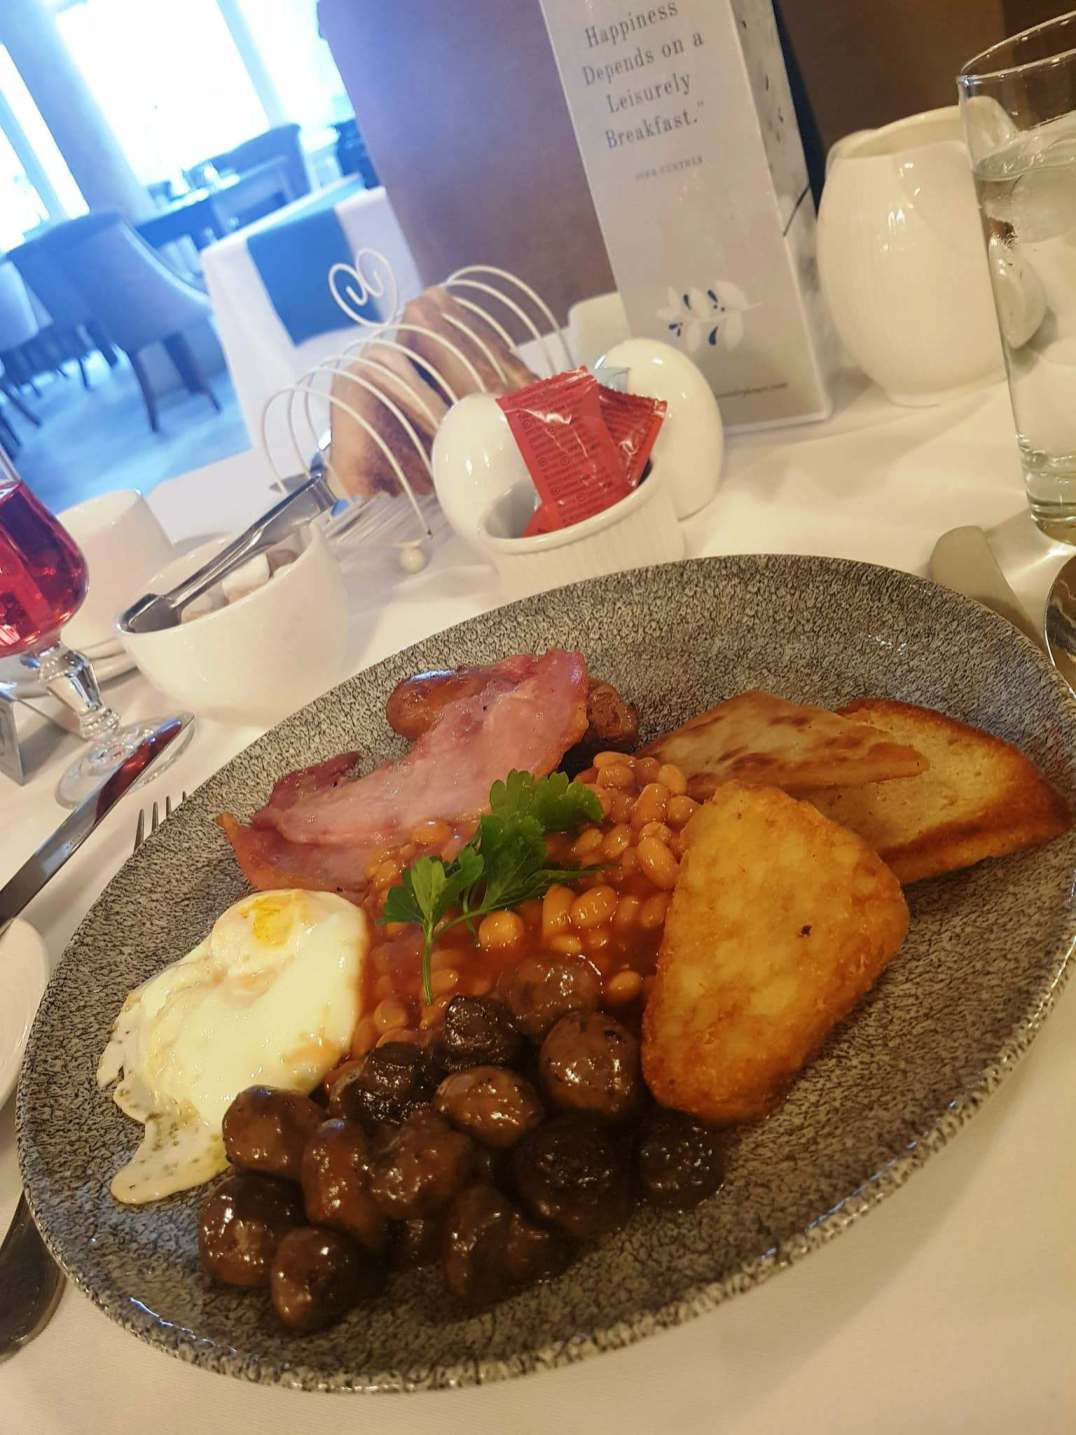 Breakfast at the Carleton Restaurant at Corick House Hotel